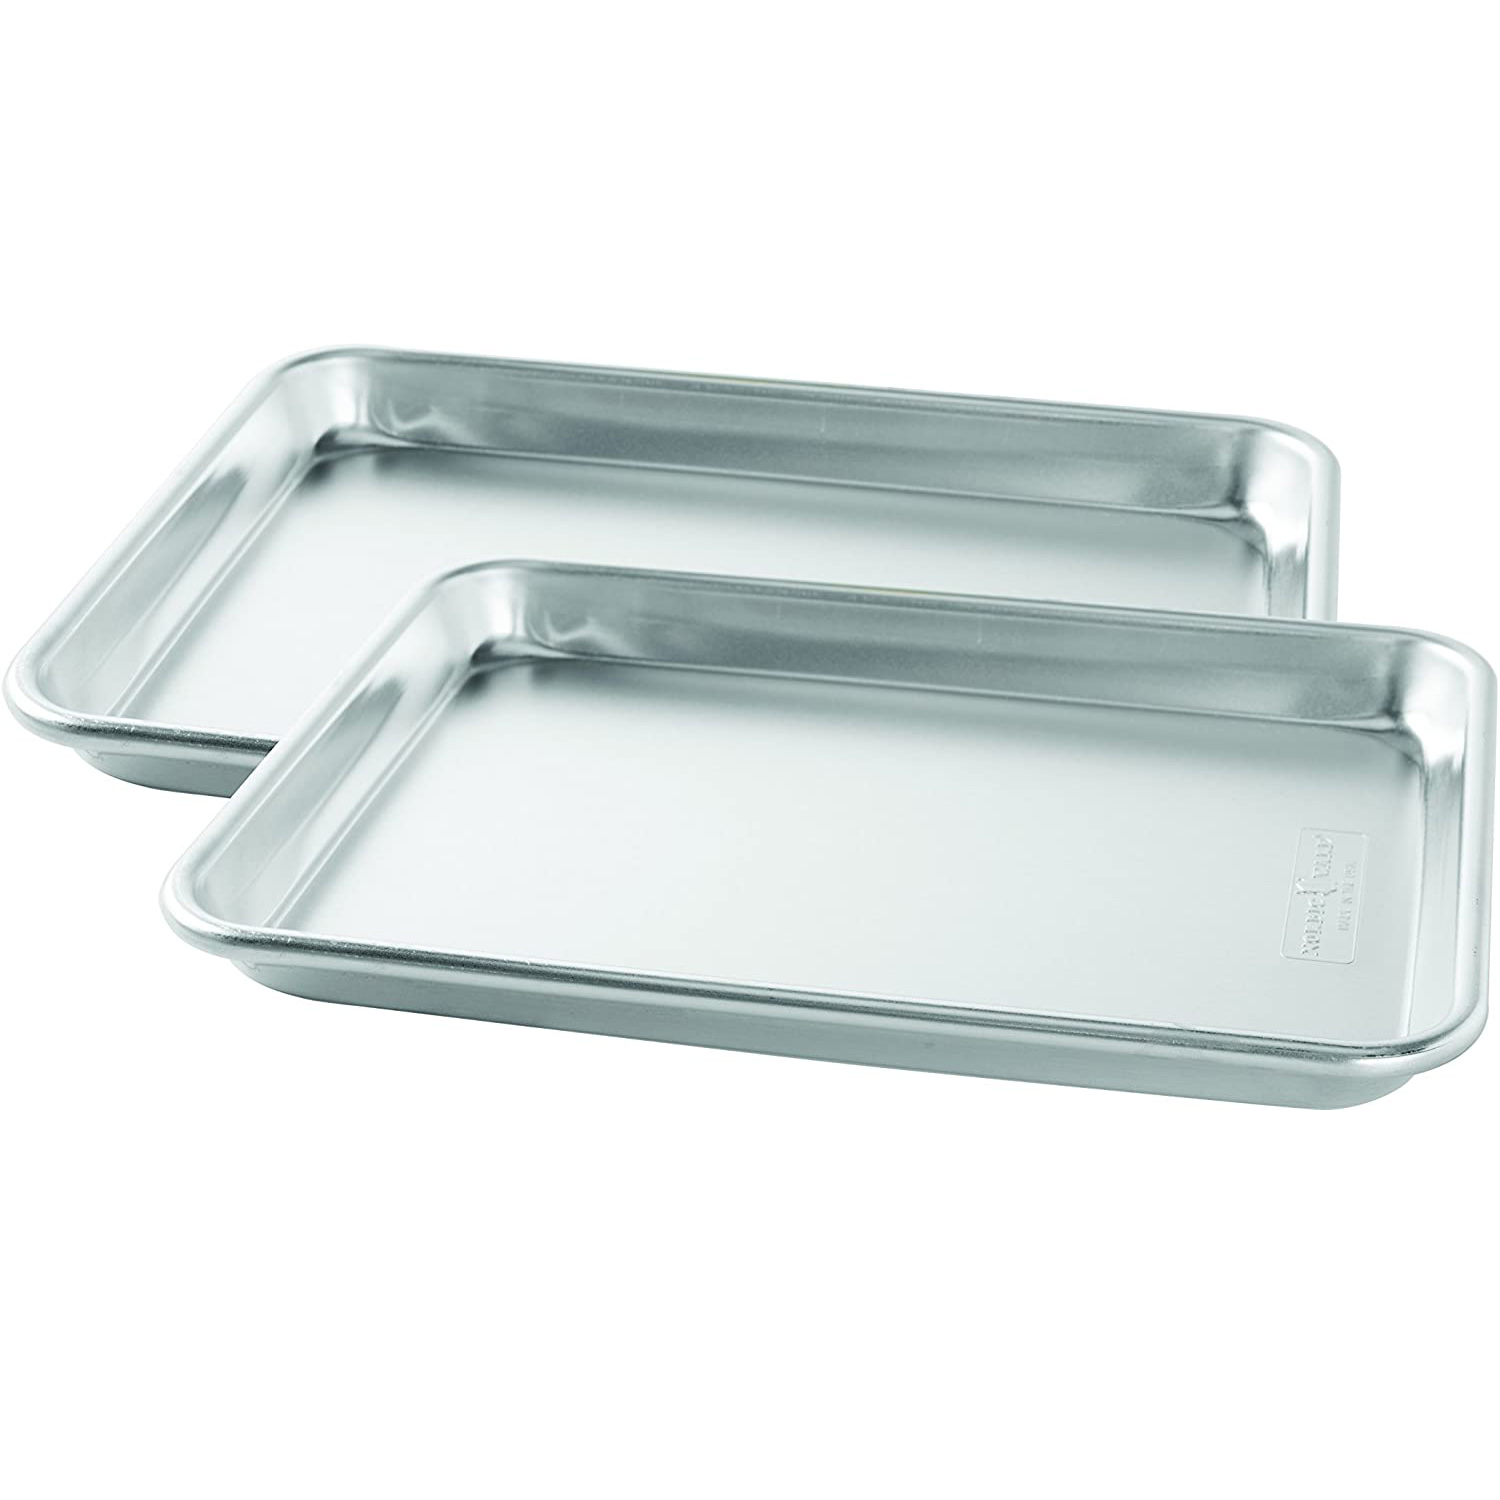 Nordic Ware Quarter Sheet Pan on a white background